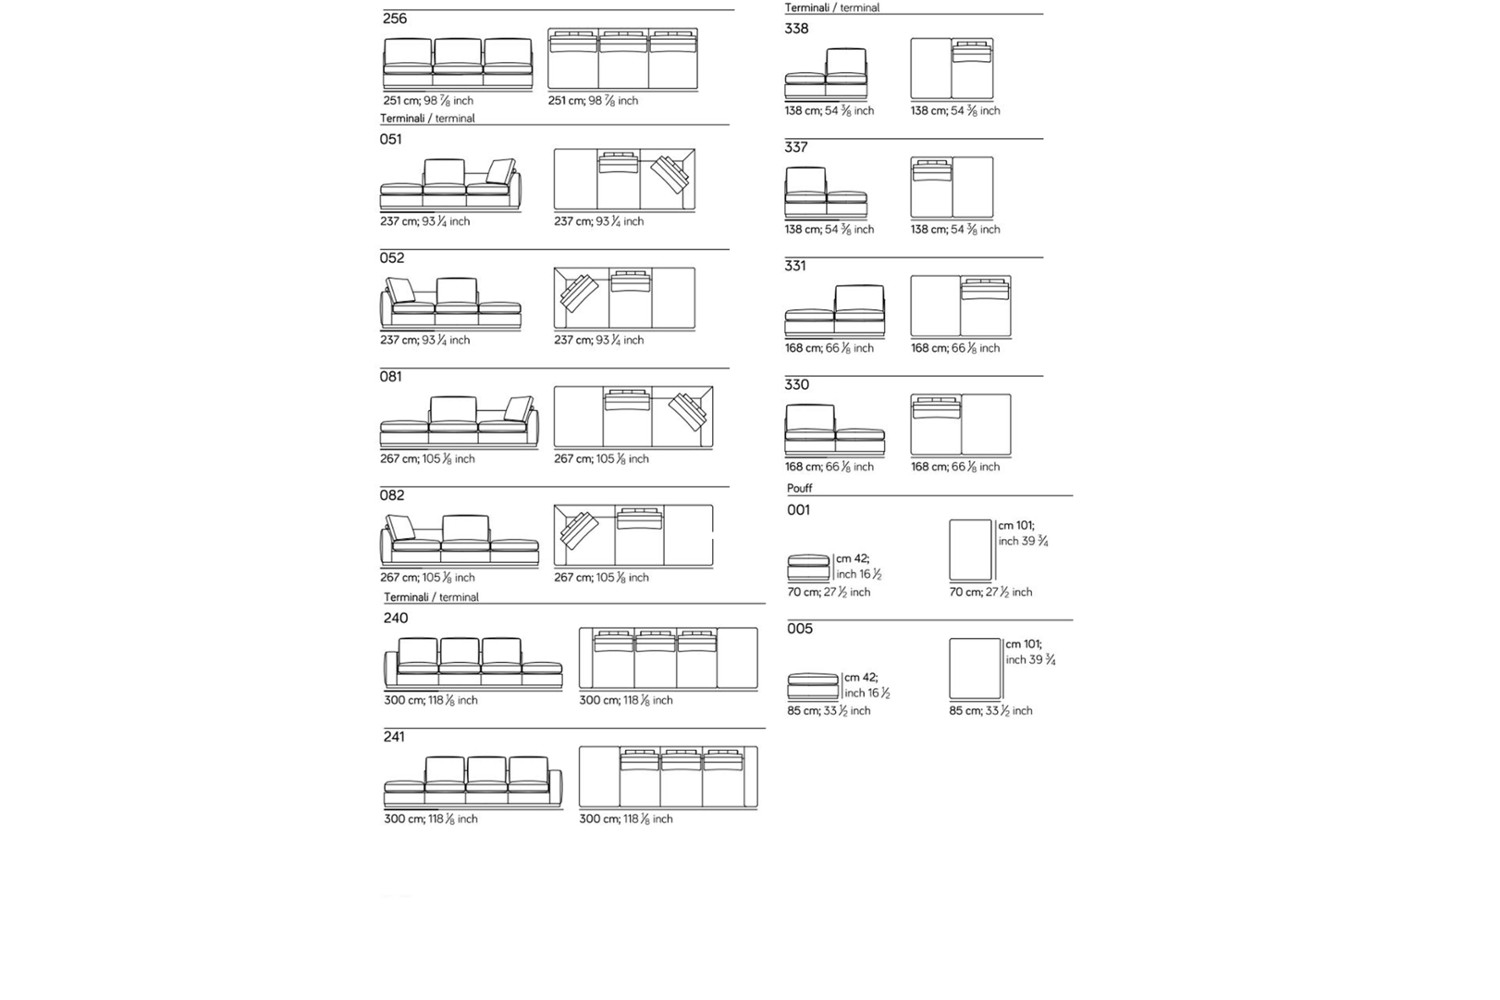 Fripp new spec sheet 2 Fripp new spec sheet 2.jpg Fripp sofa schematics